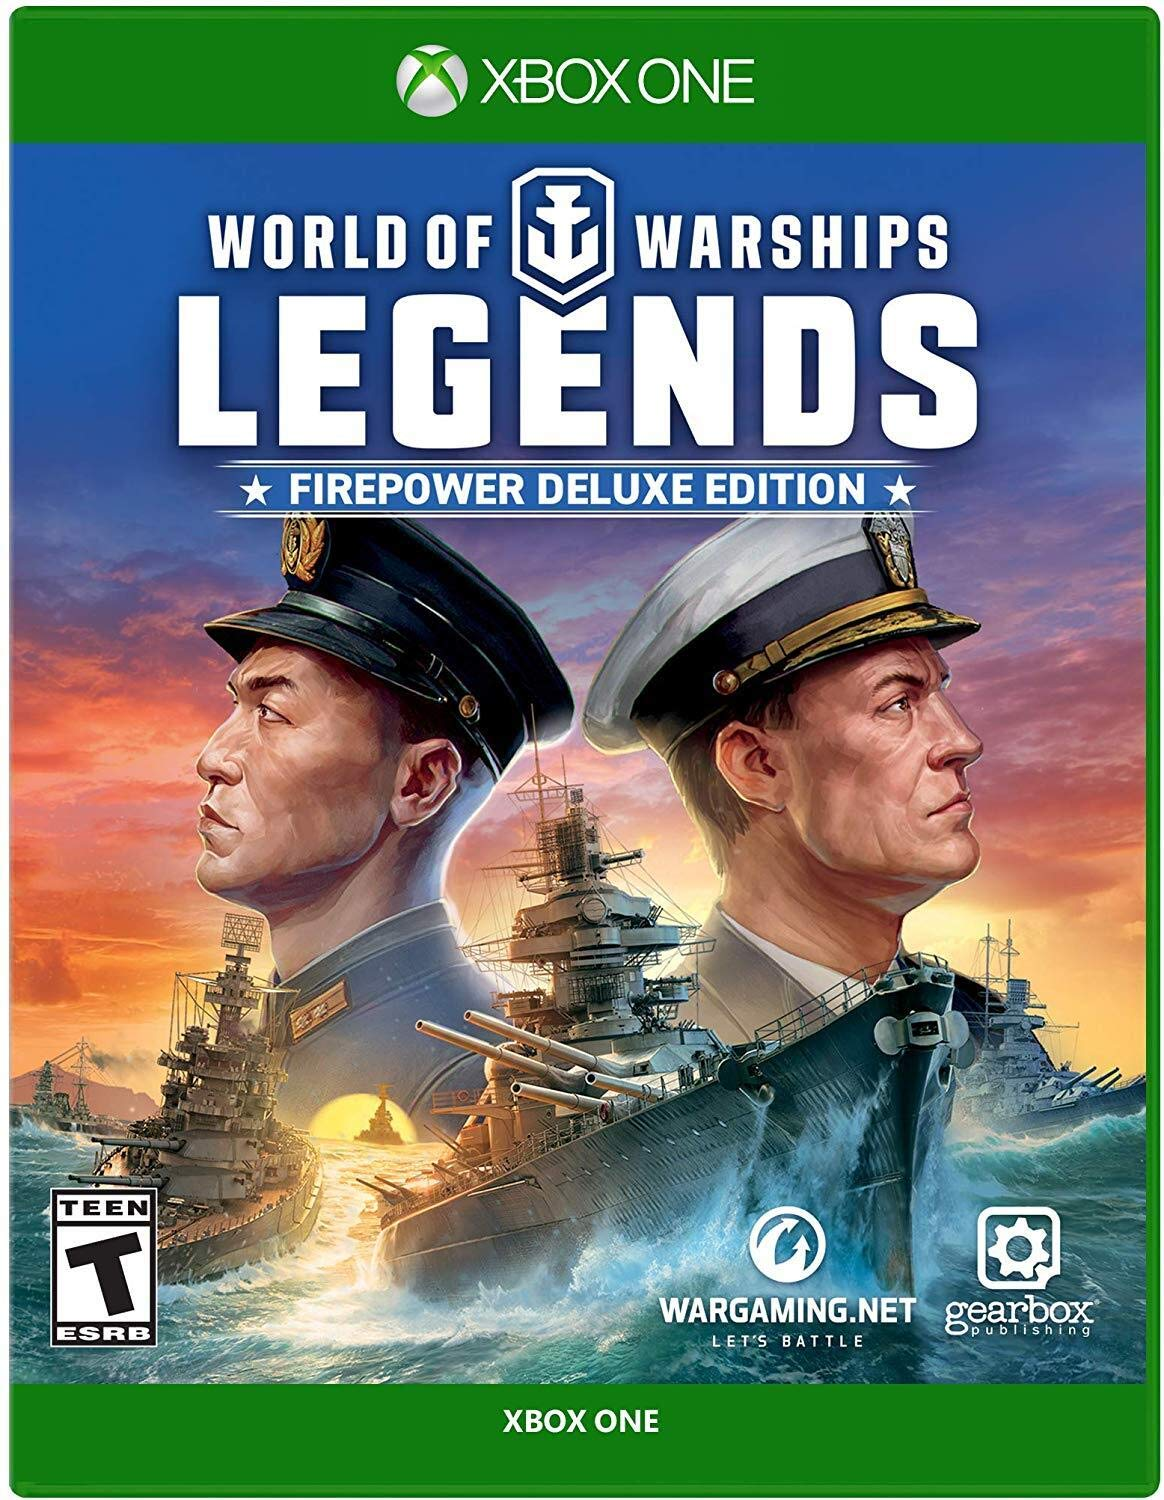 Max Gorgeous 40% OFF World of Warships: Legends Firepower Xbox Deluxe Edition - One